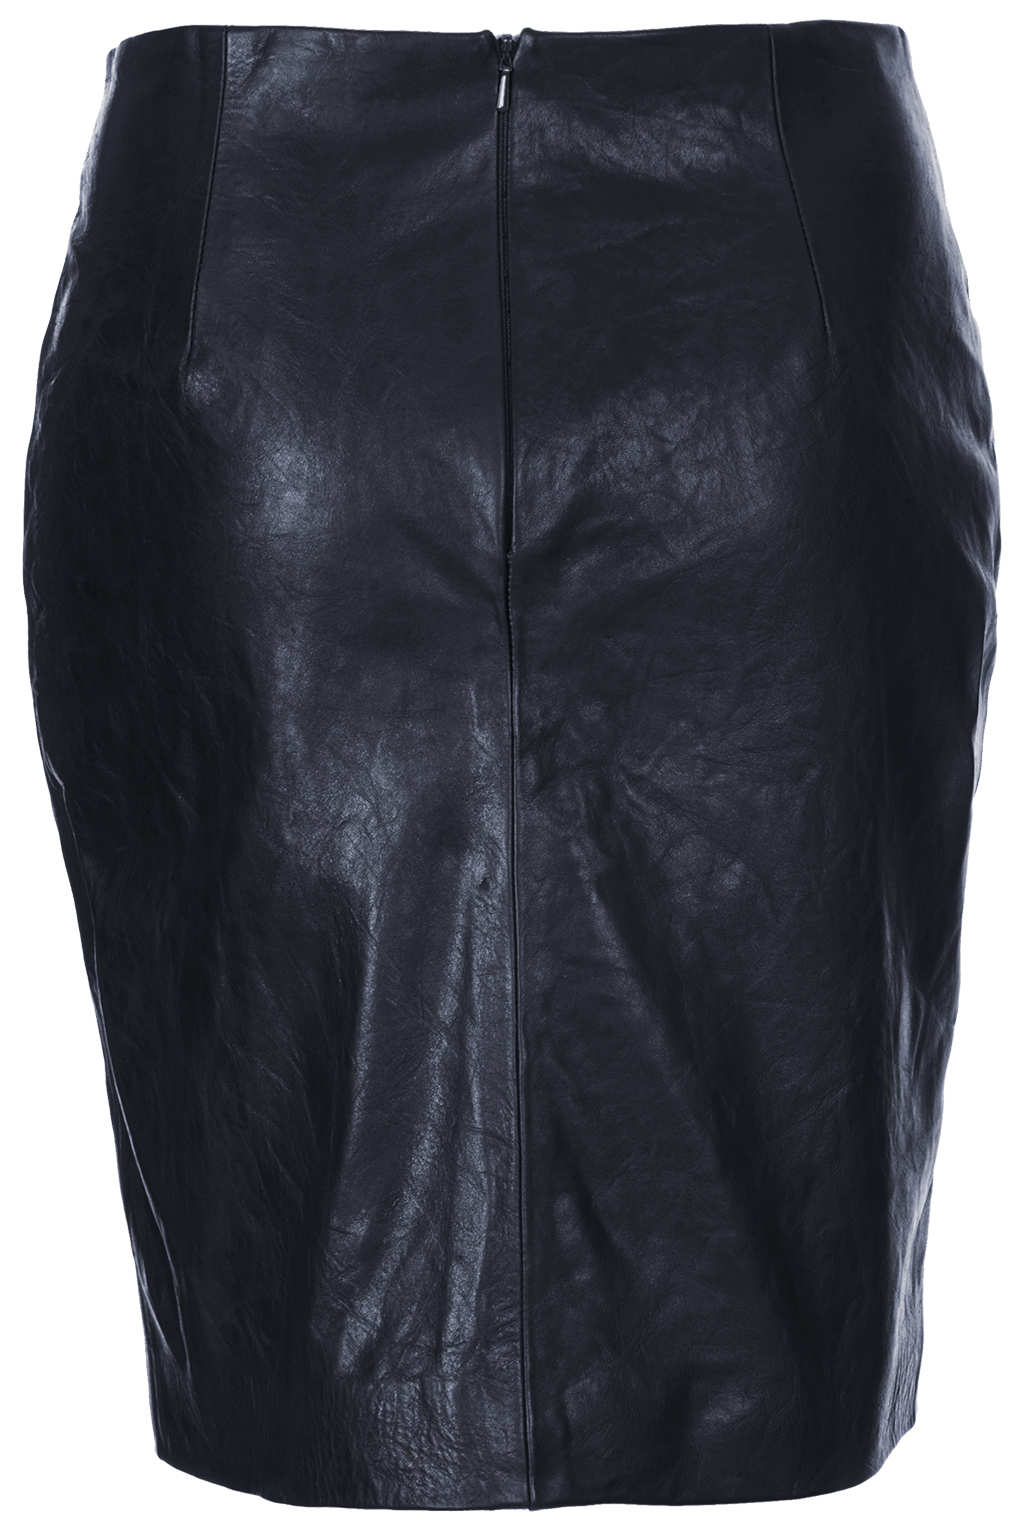 Topshop Leather Pencil Skirt By Boutique in Blue | Lyst